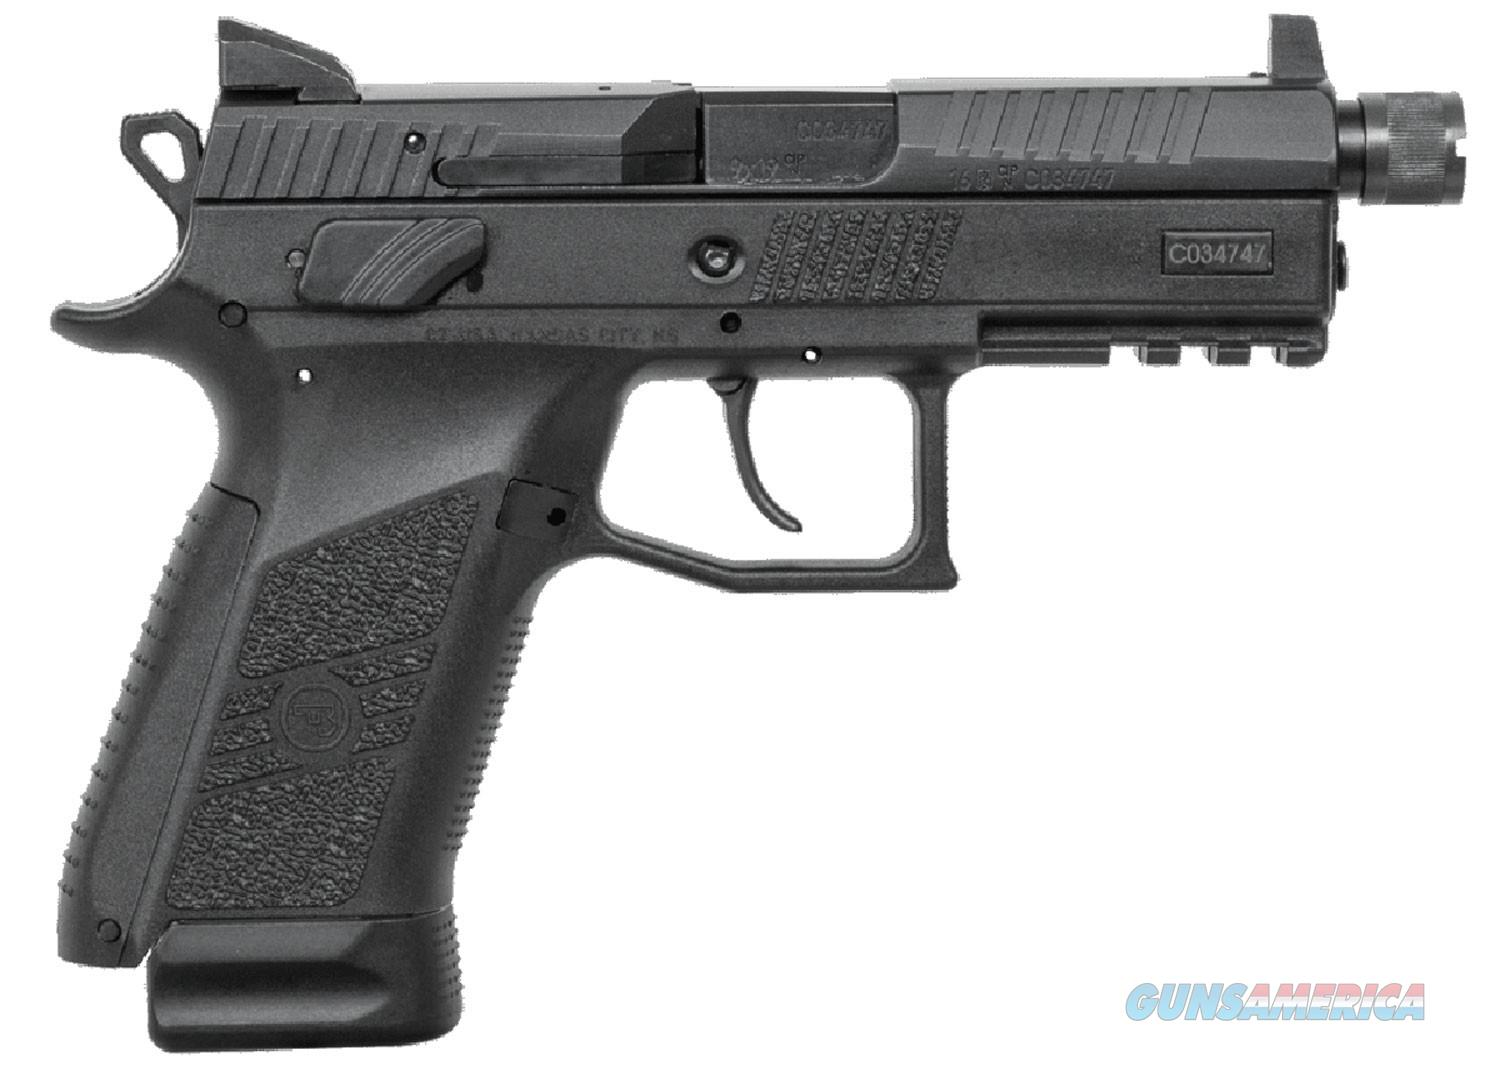 CZ-USA CZ P-07 9mm 17+1 Black Suppressor-Ready Pistol  Guns > Pistols > CZ Pistols